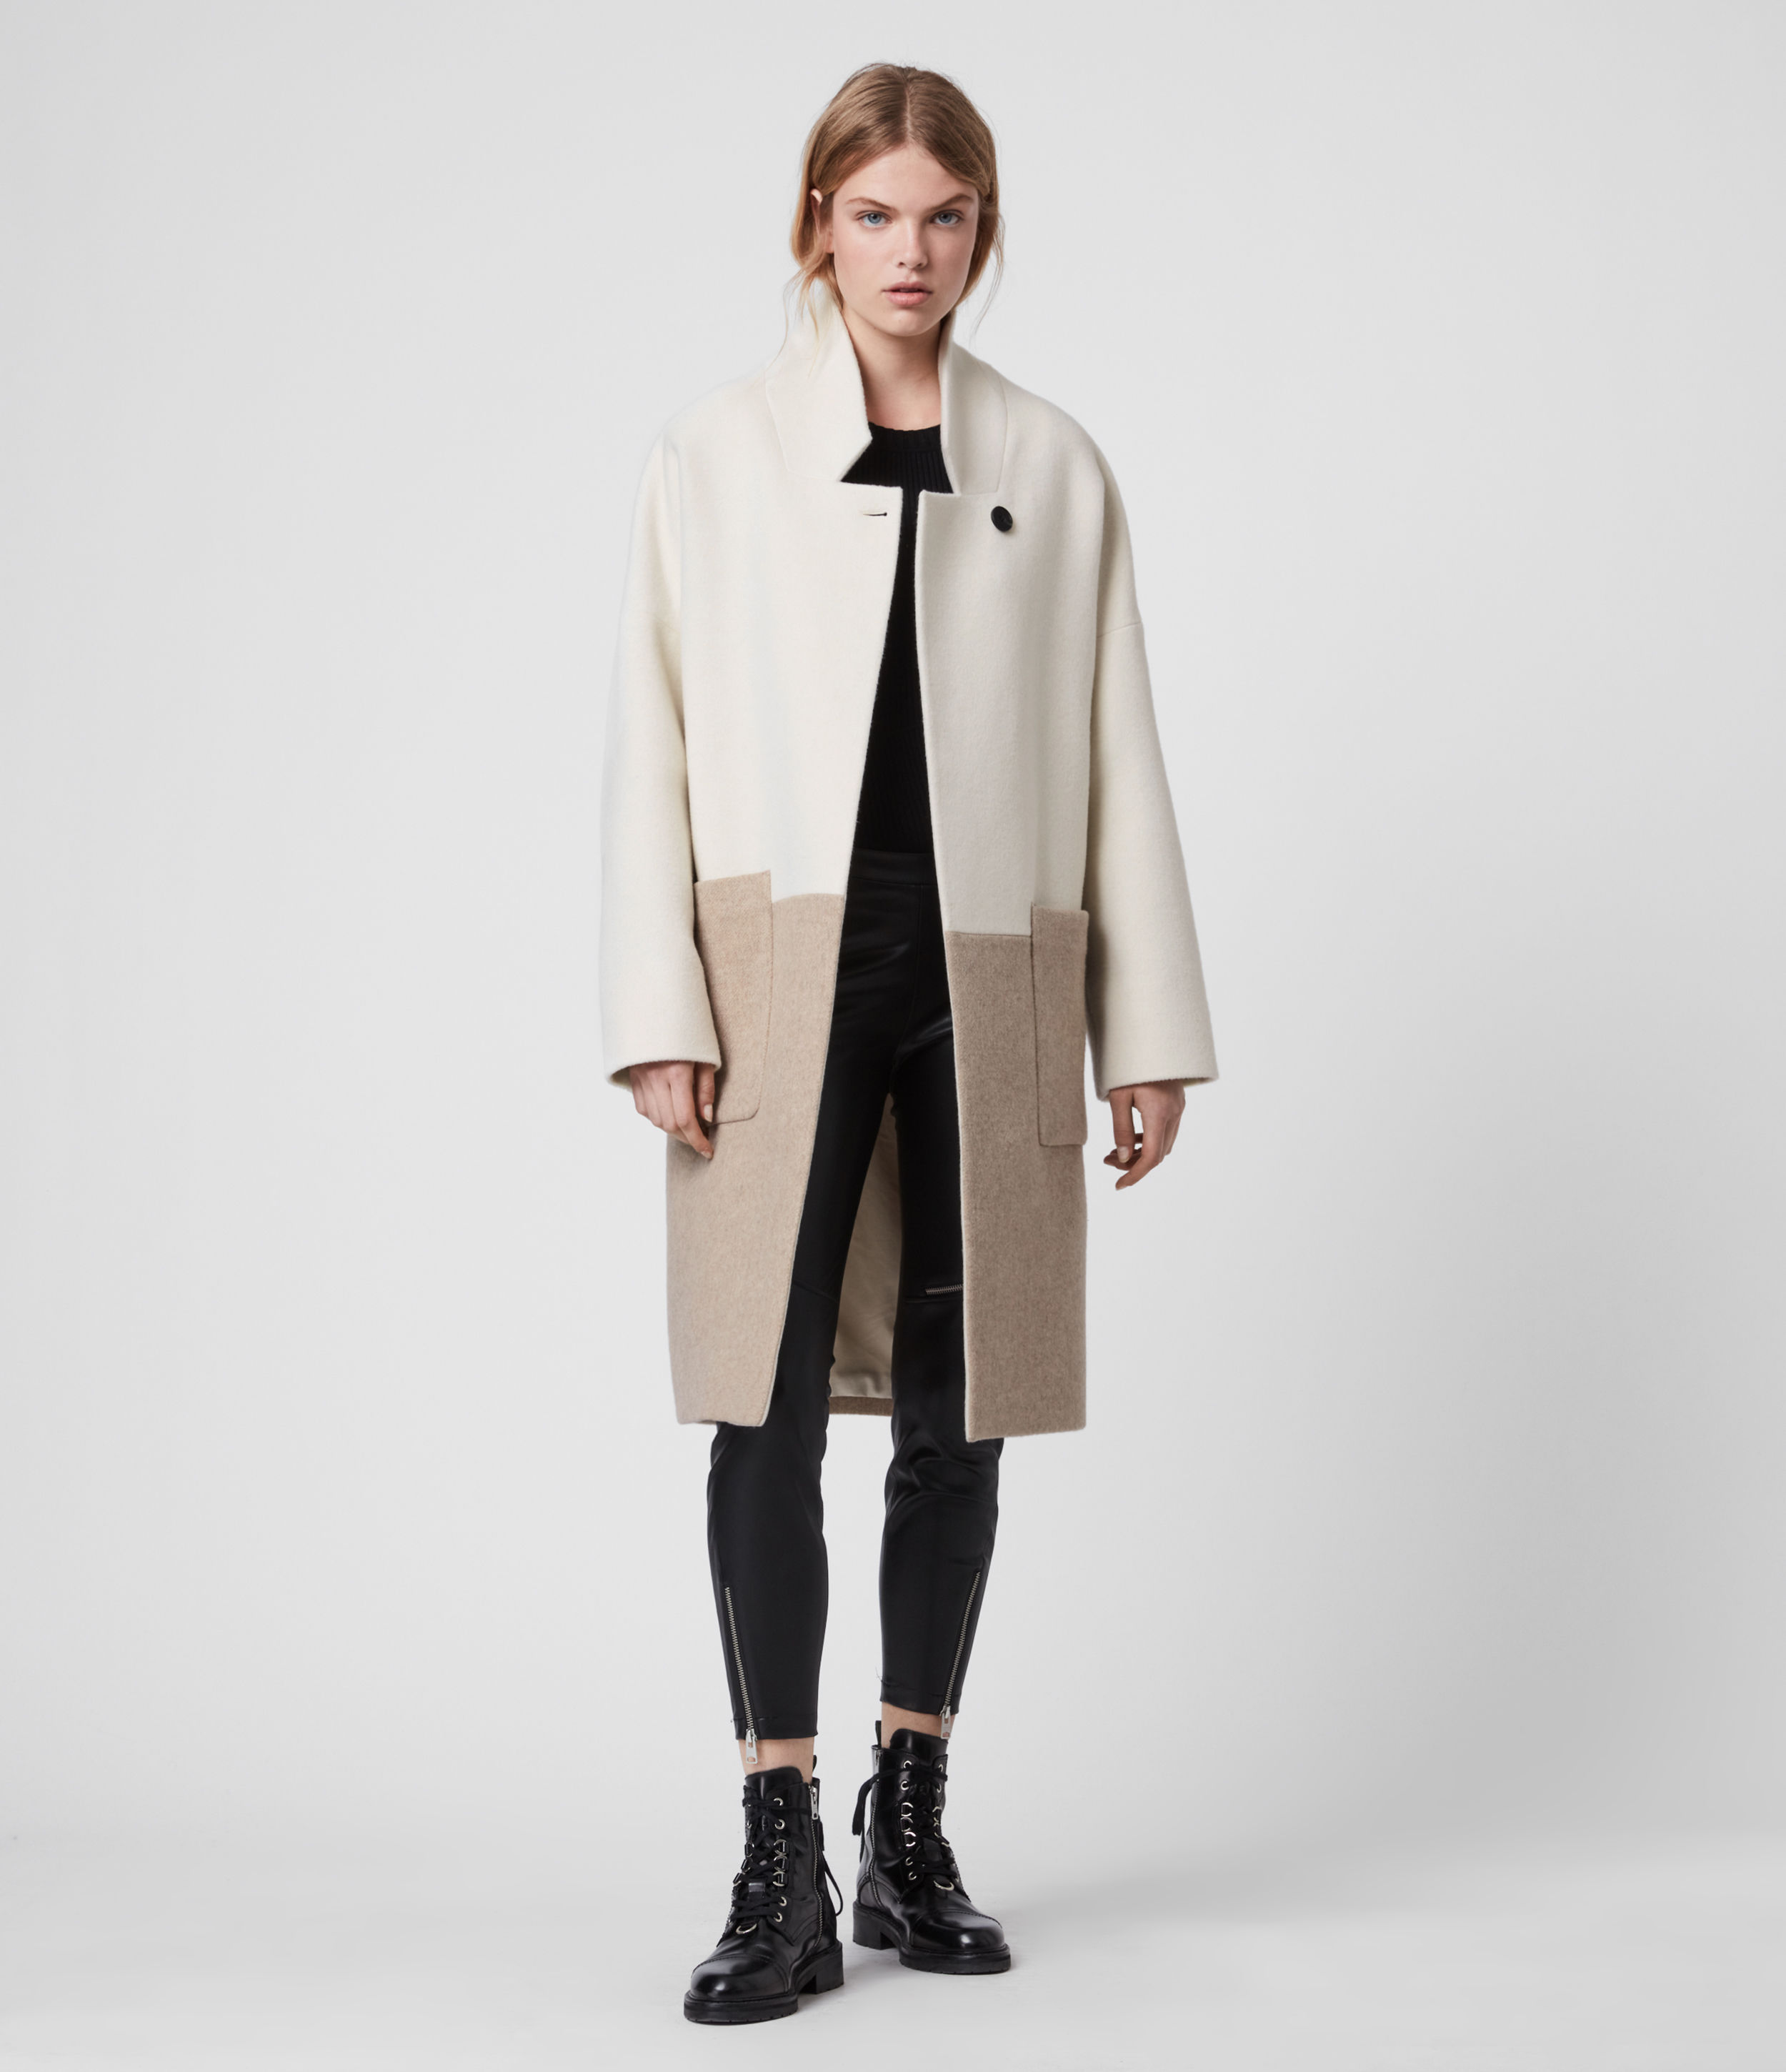 AllSaints Women's Wool Rylee Coat, White and Brown, Size: XS